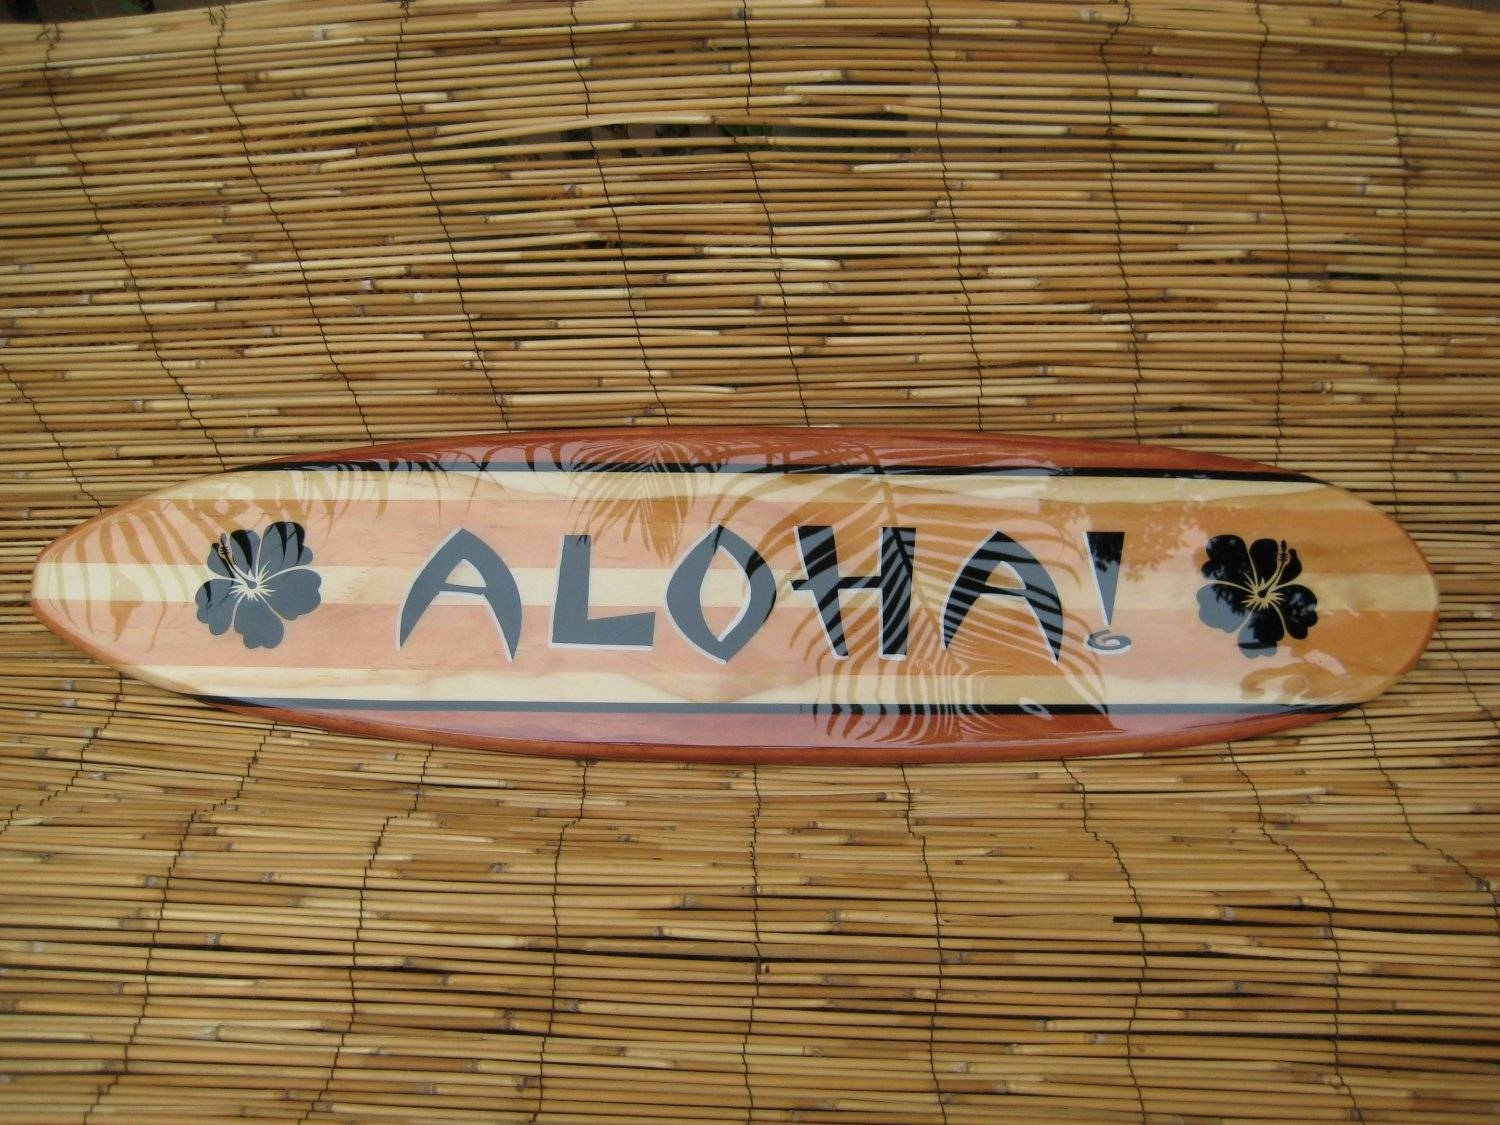 3Ft Decorative Hawaiian Aloha Surfboard Wall Arttiki Soul Intended For Best And Newest Decorative Surfboard Wall Art (View 3 of 25)